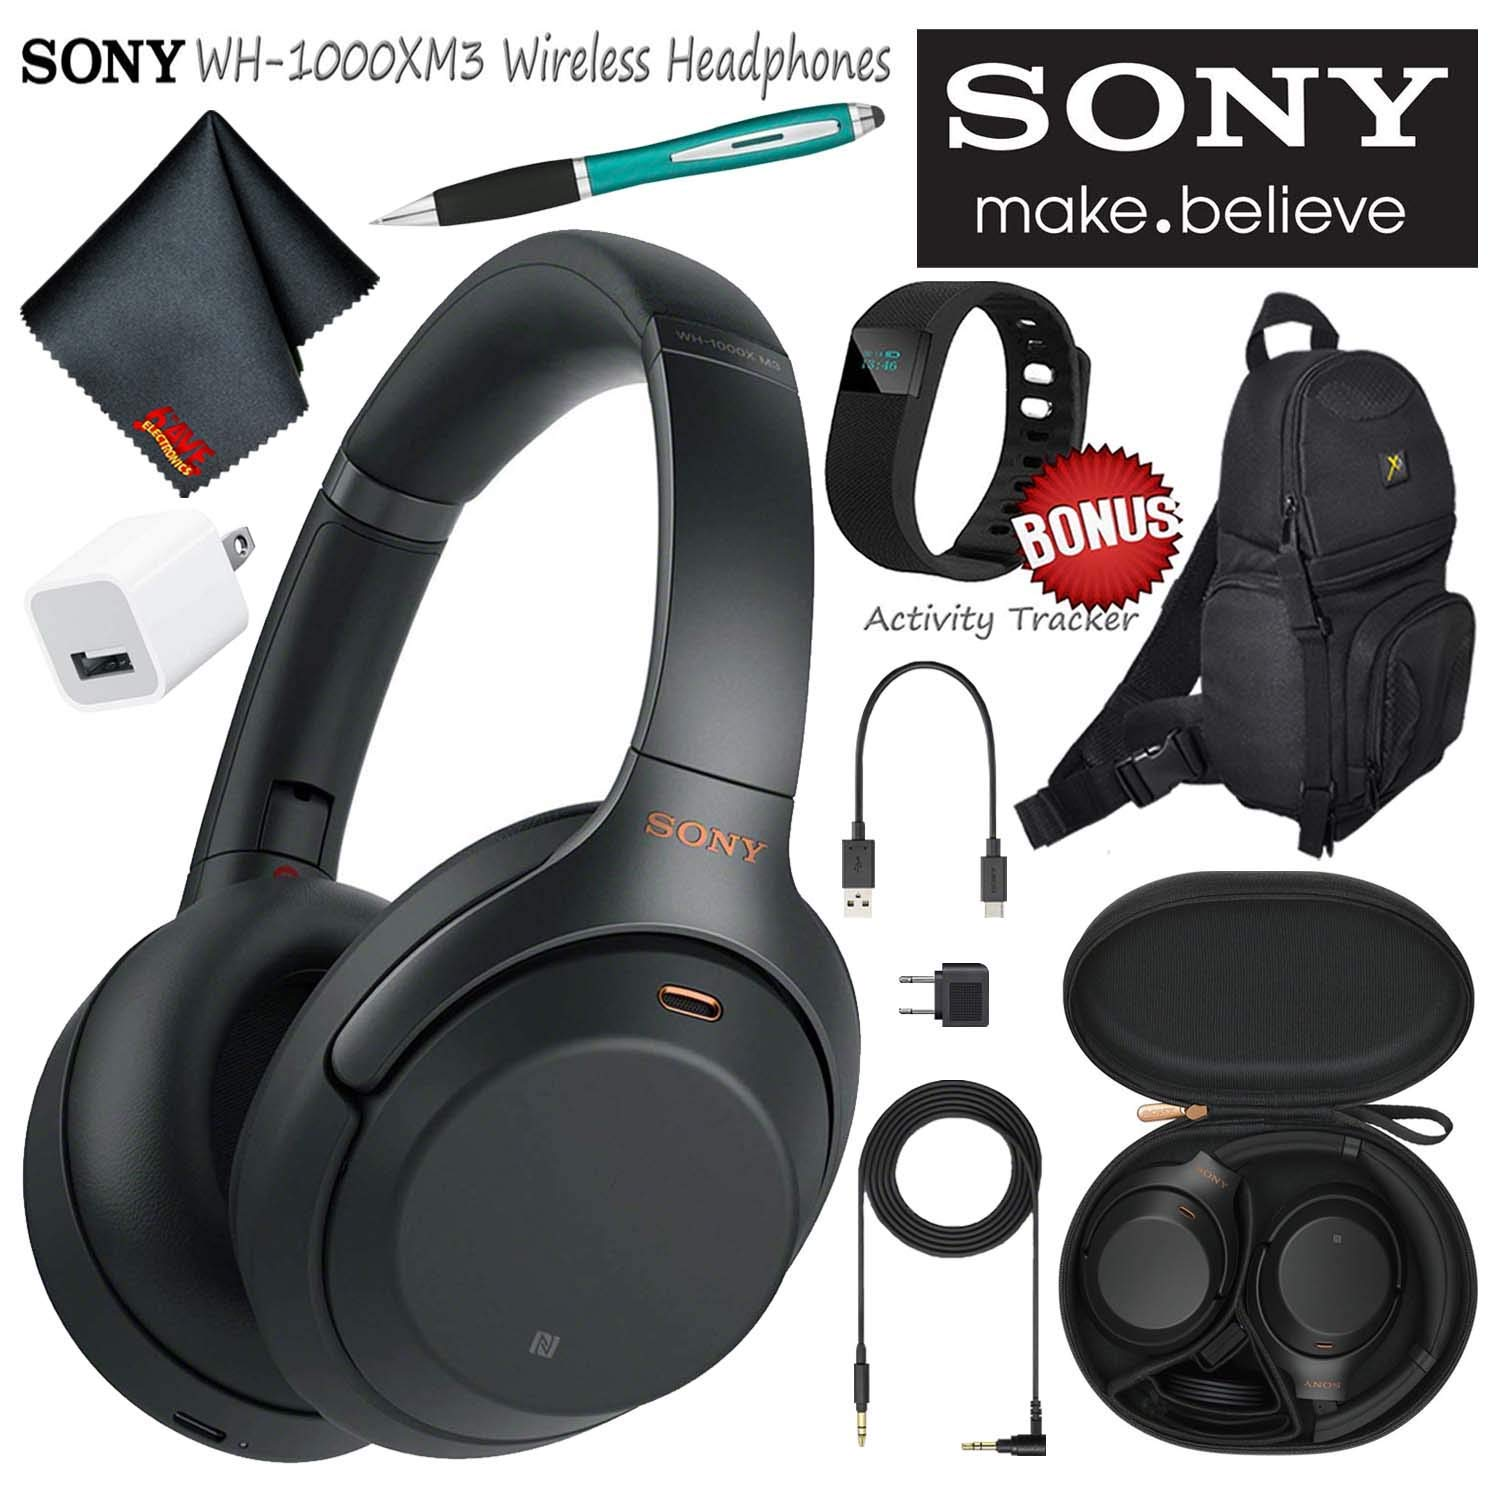 Sony WH-1000XM3B Wireless Bluetooth Noise-Canceling Over-Ear Headphones (Black) Essential Commuter Bundle Kit with Sling Backpack + Stylus + More